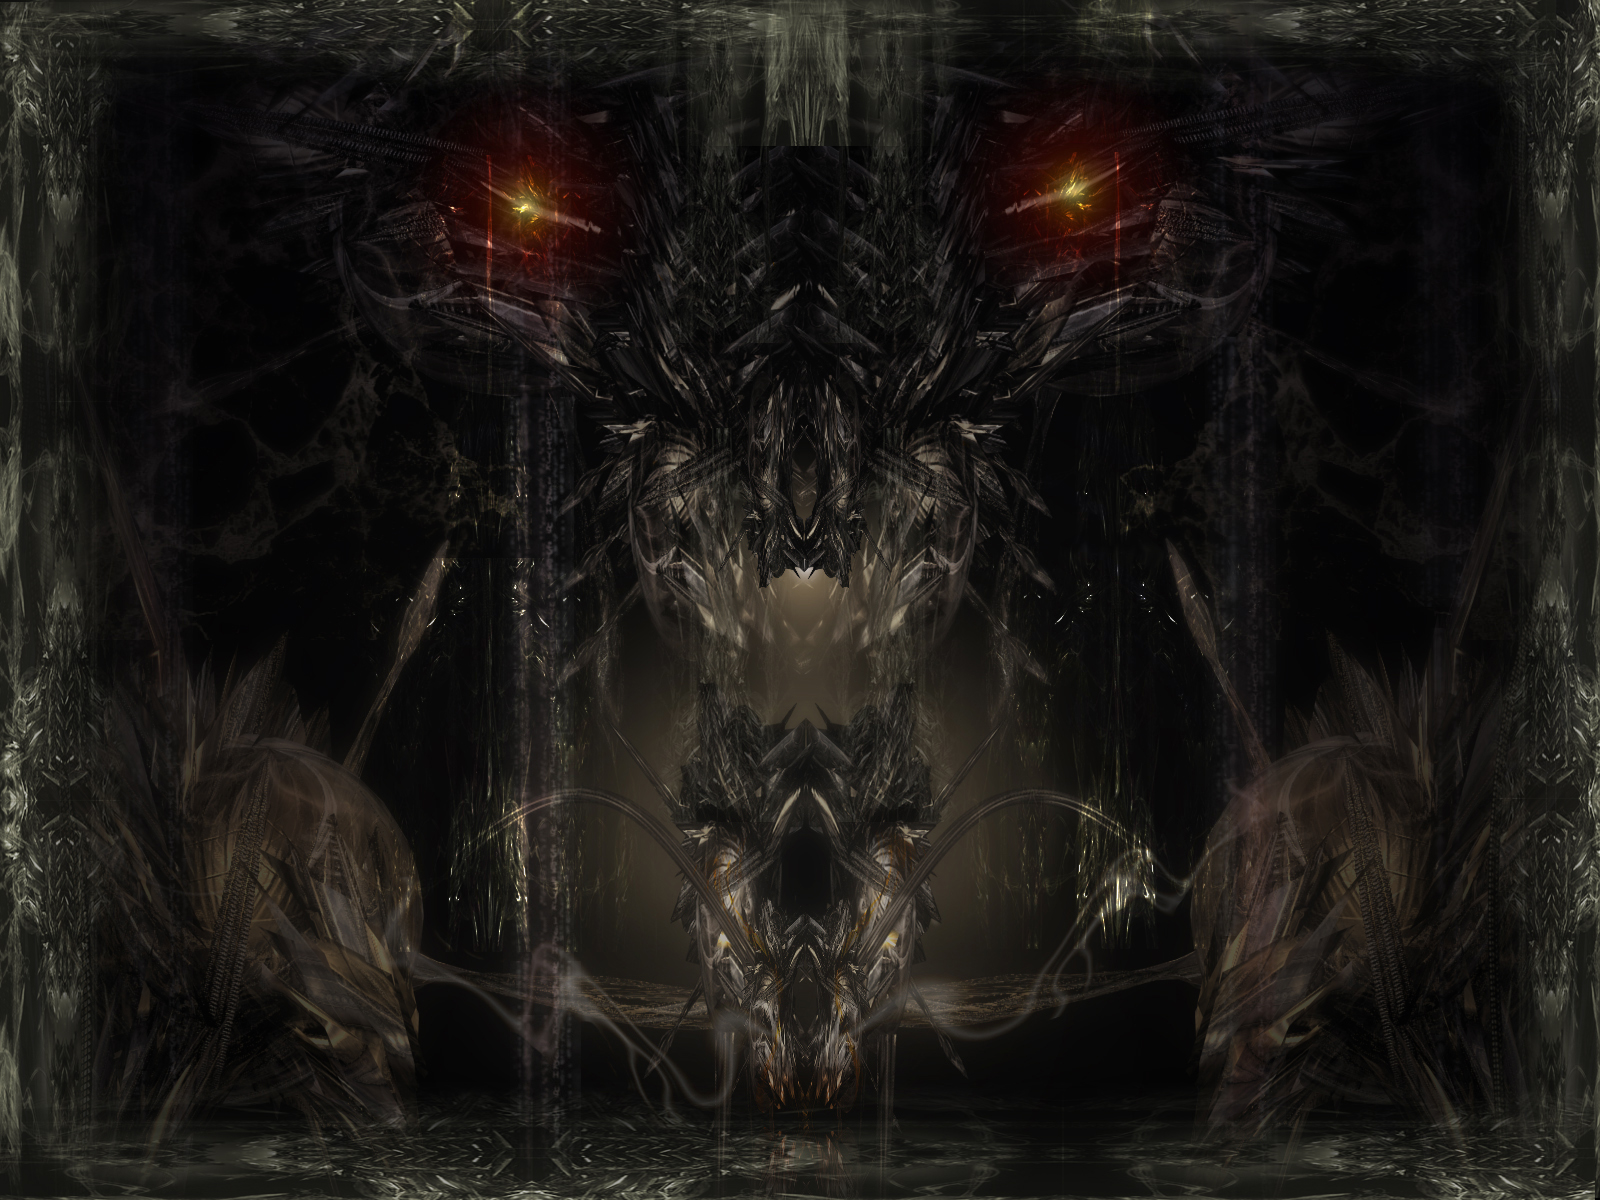 images of 3840x1200 high resolution horror wallpaper calto